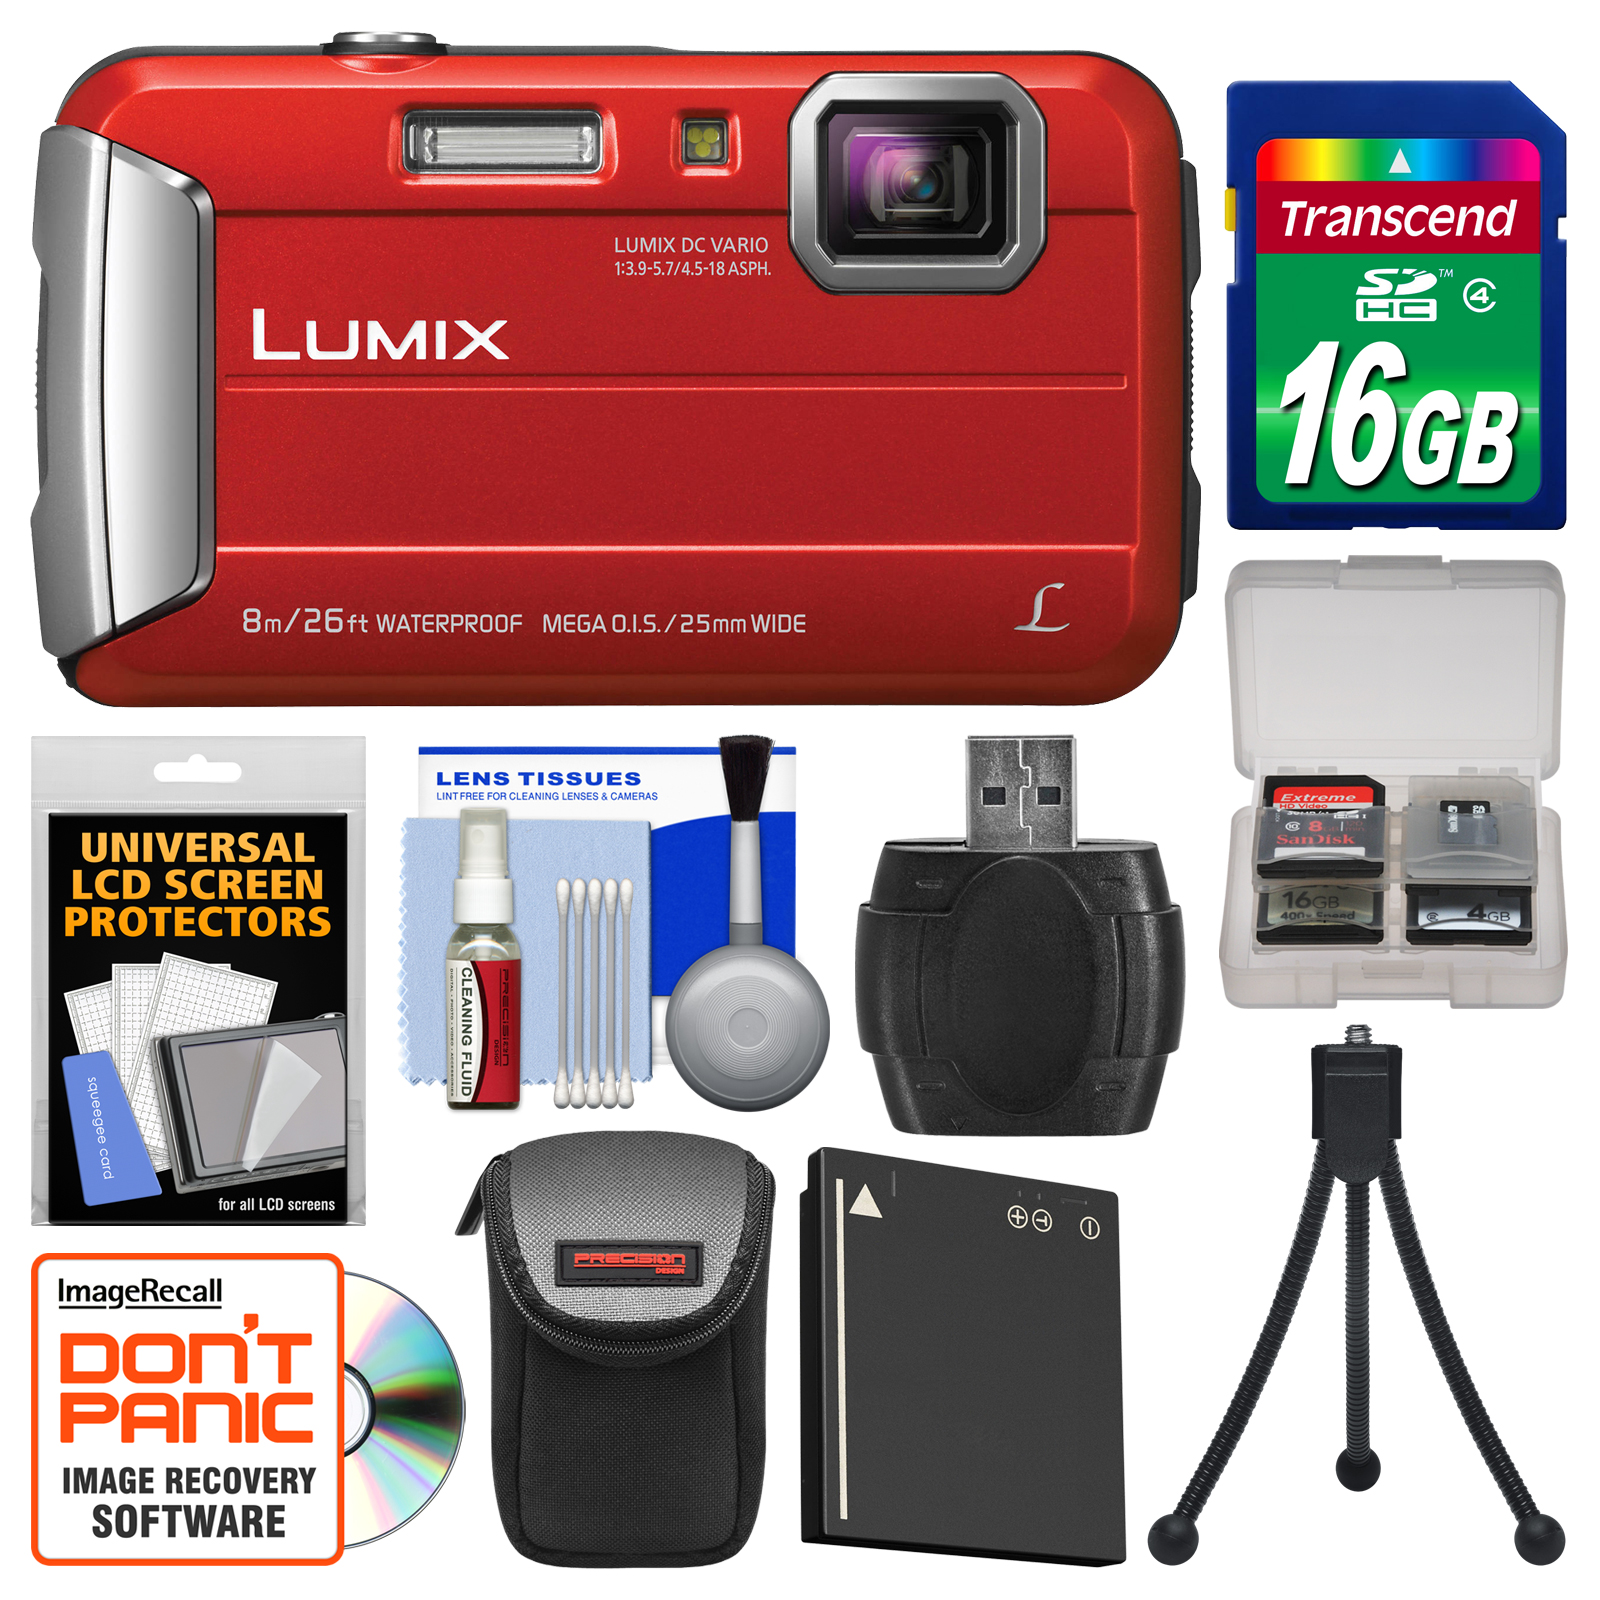 Panasonic Lumix DMC-TS30 Tough Shock & Waterproof Digital Camera (Red) with 16GB Card   Case   Battery   Flex Tripod   Kit